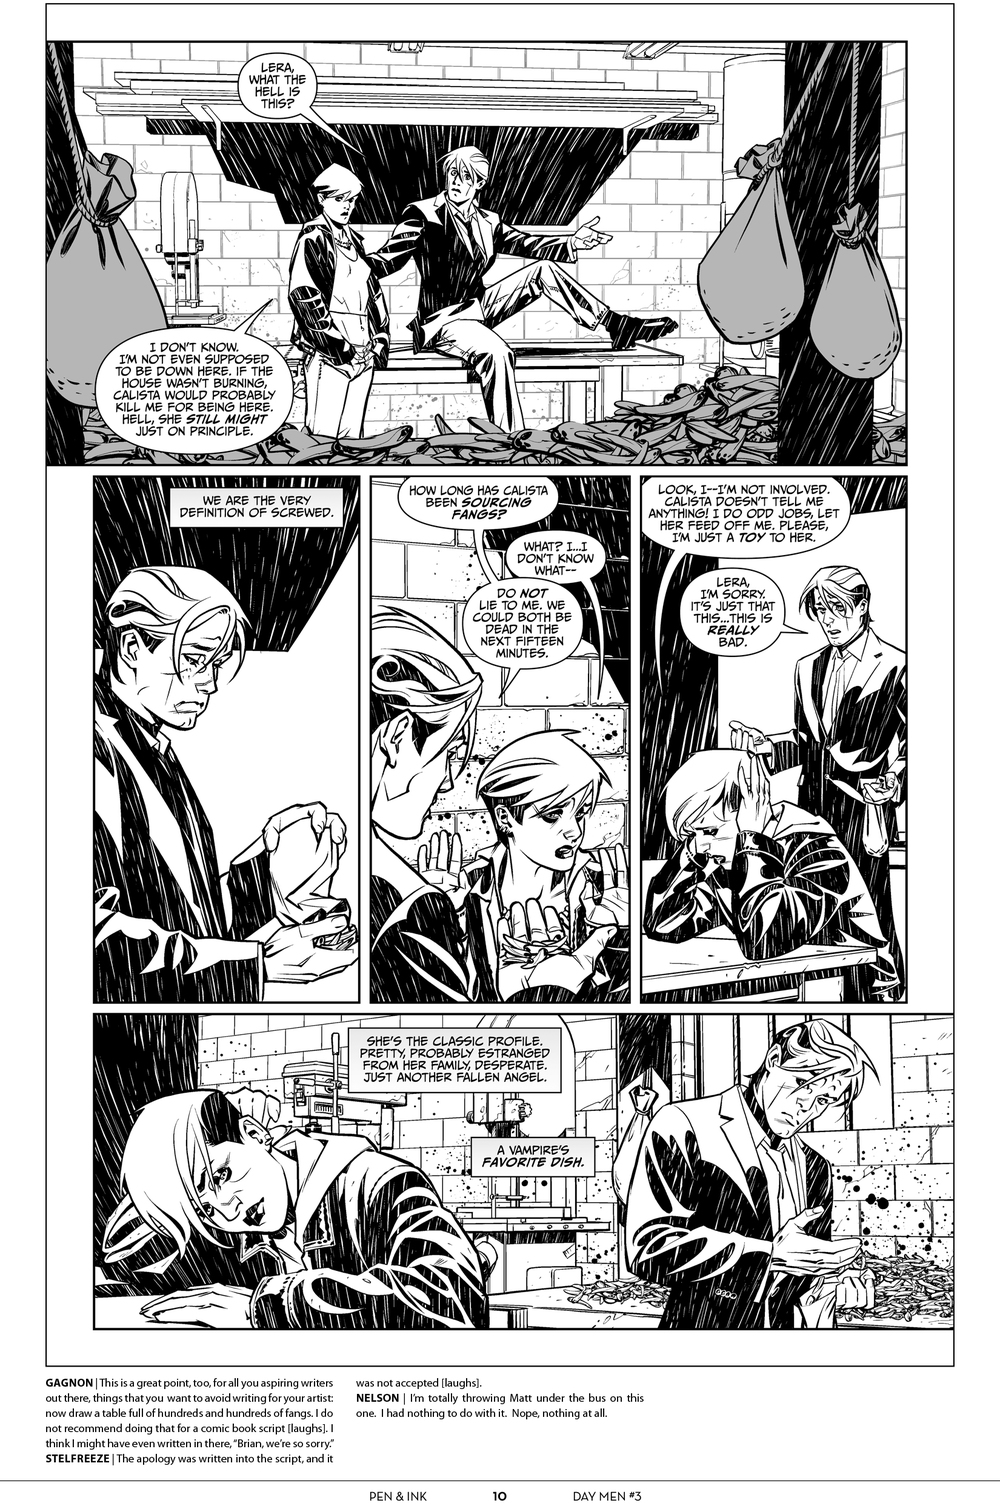 BOOM_Pen_and_Ink_Day_Men_002_PRESS-10.jpg